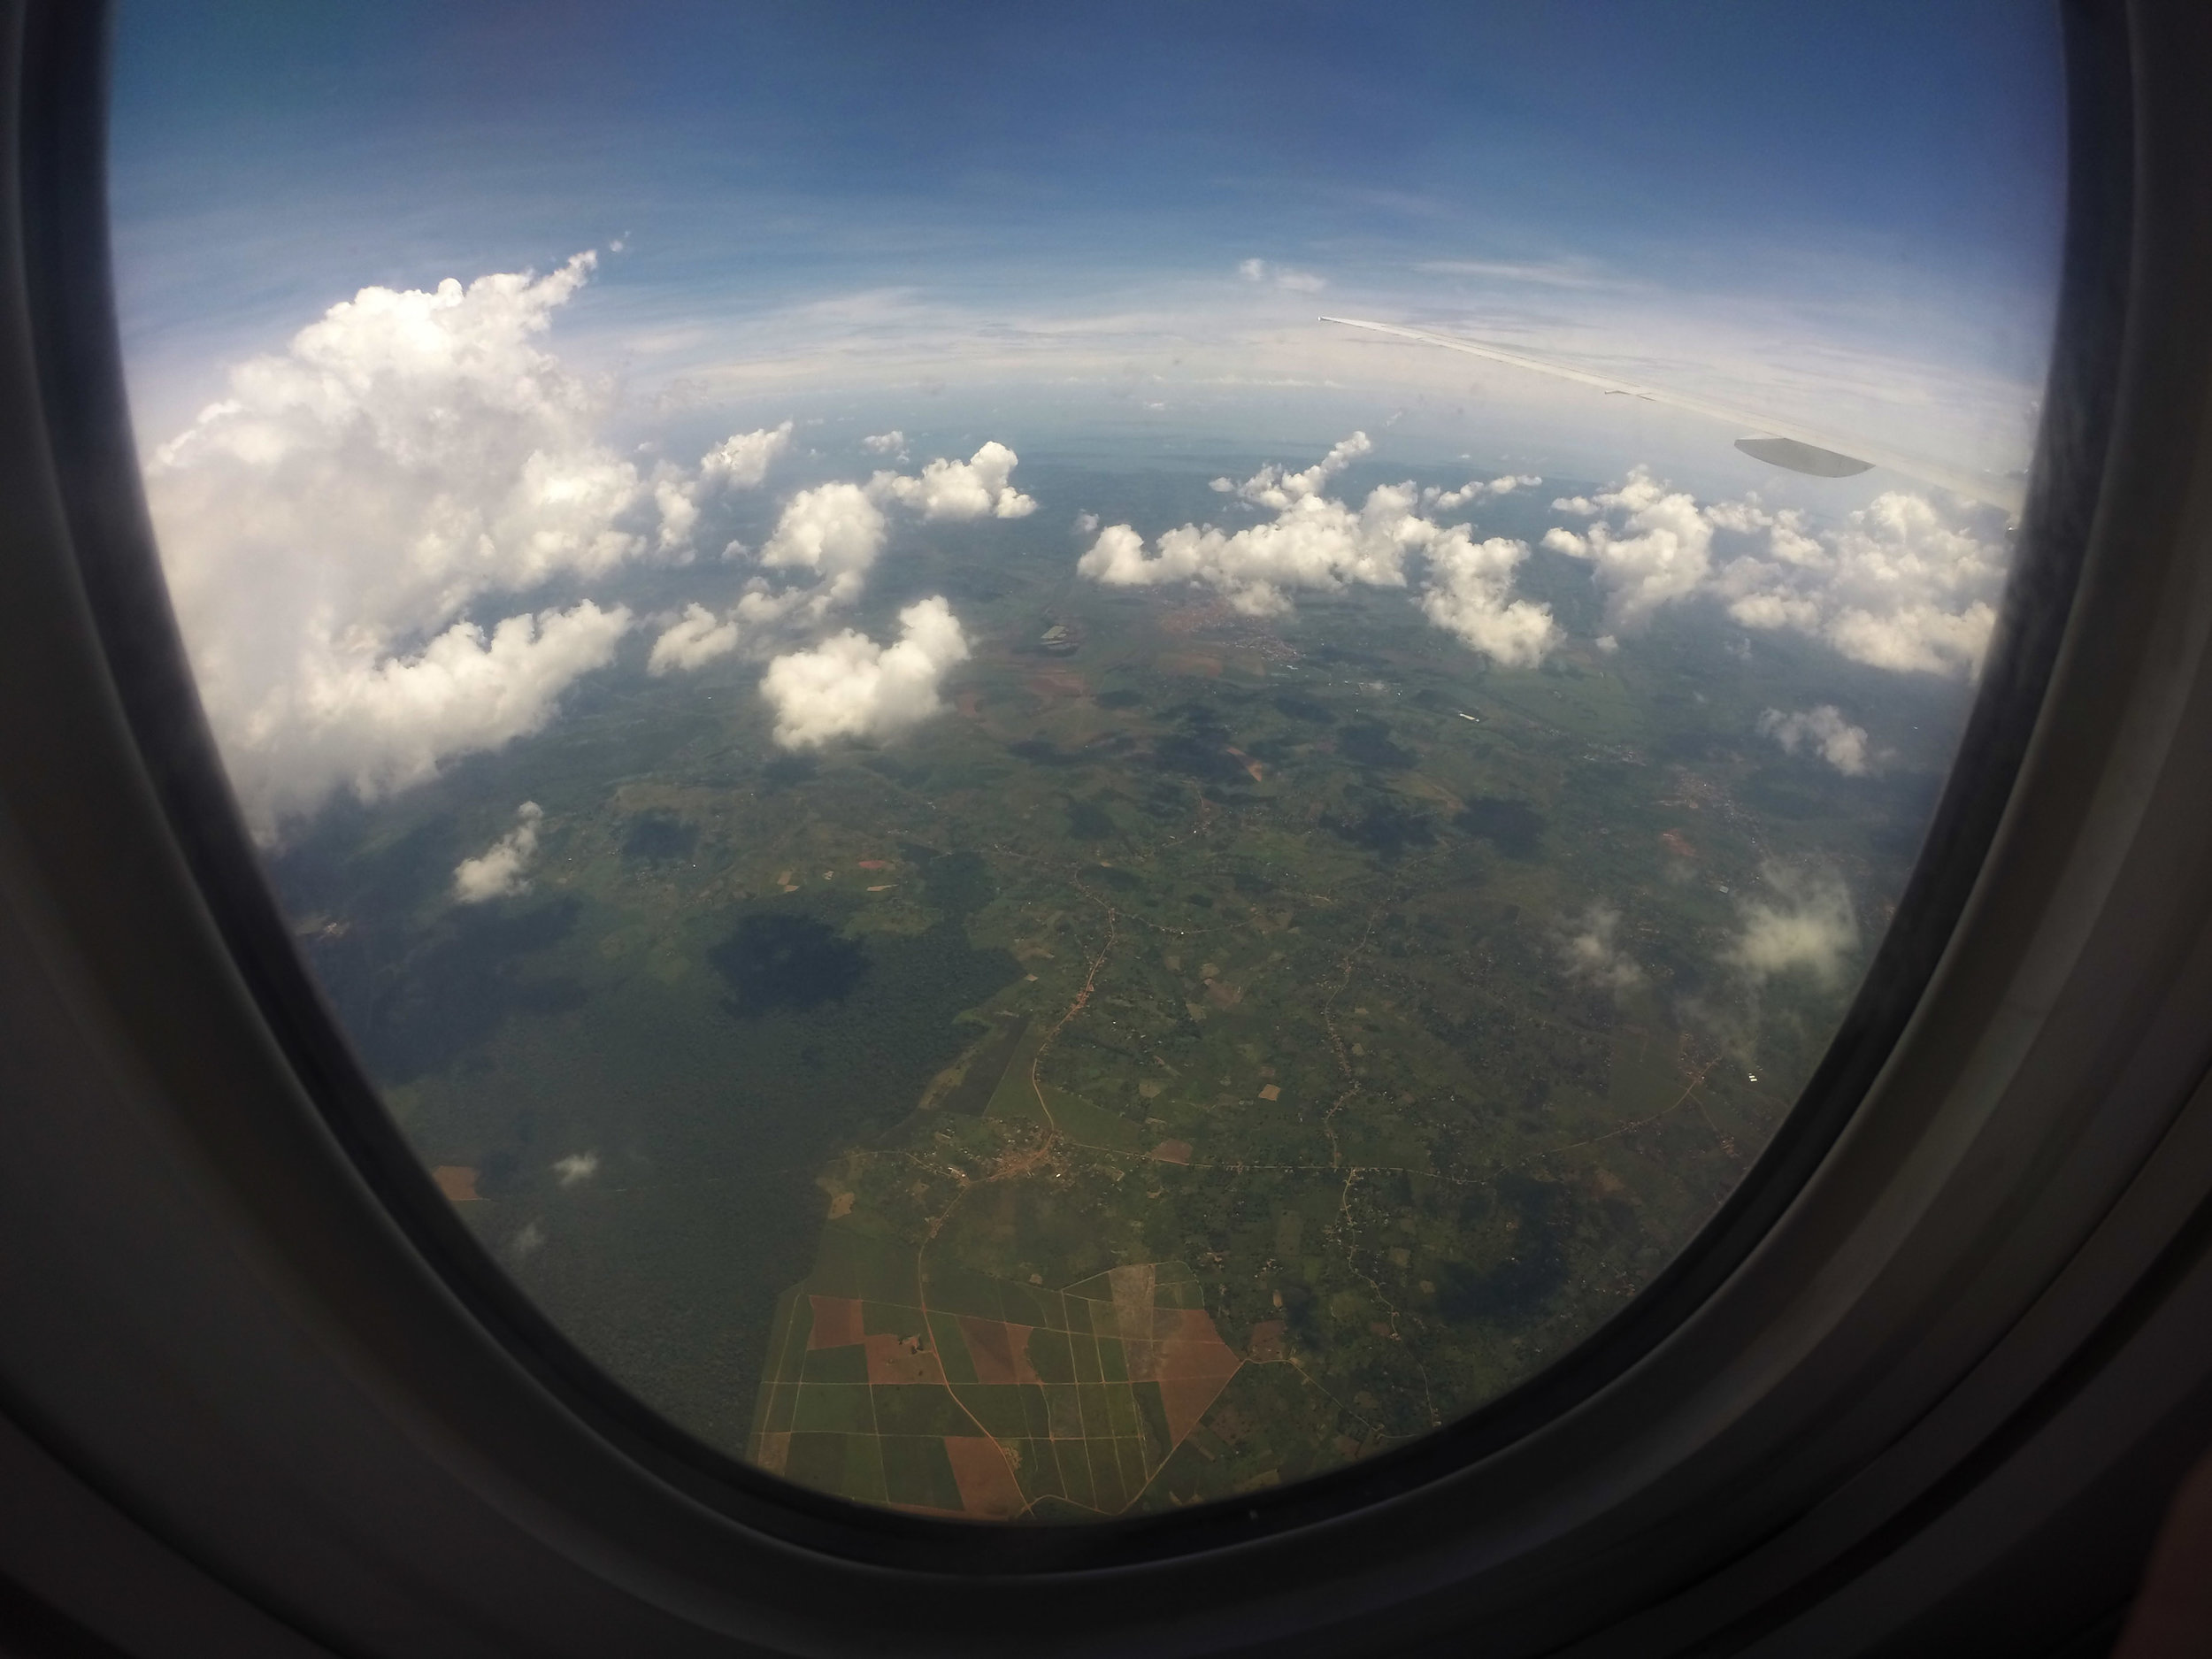 Descent into Kampala looking out on the terrain and clouds of Uganda.